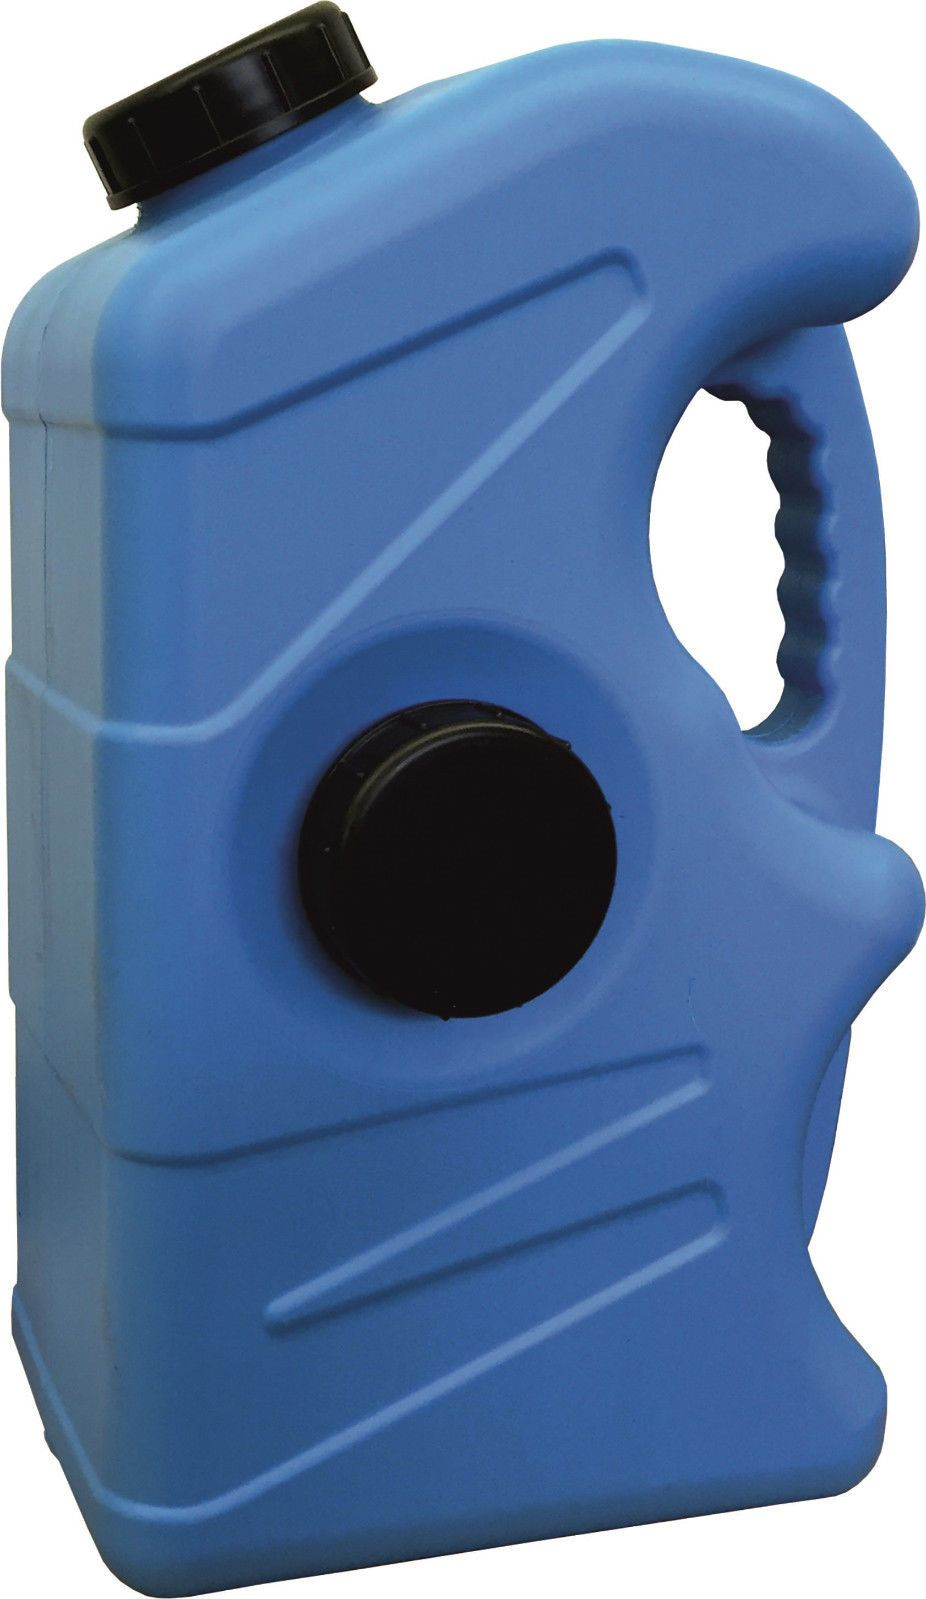 LEISUREWIZE 23 LITRE FRESH WATER STORAGE CONTAINER JERRY CAN Water